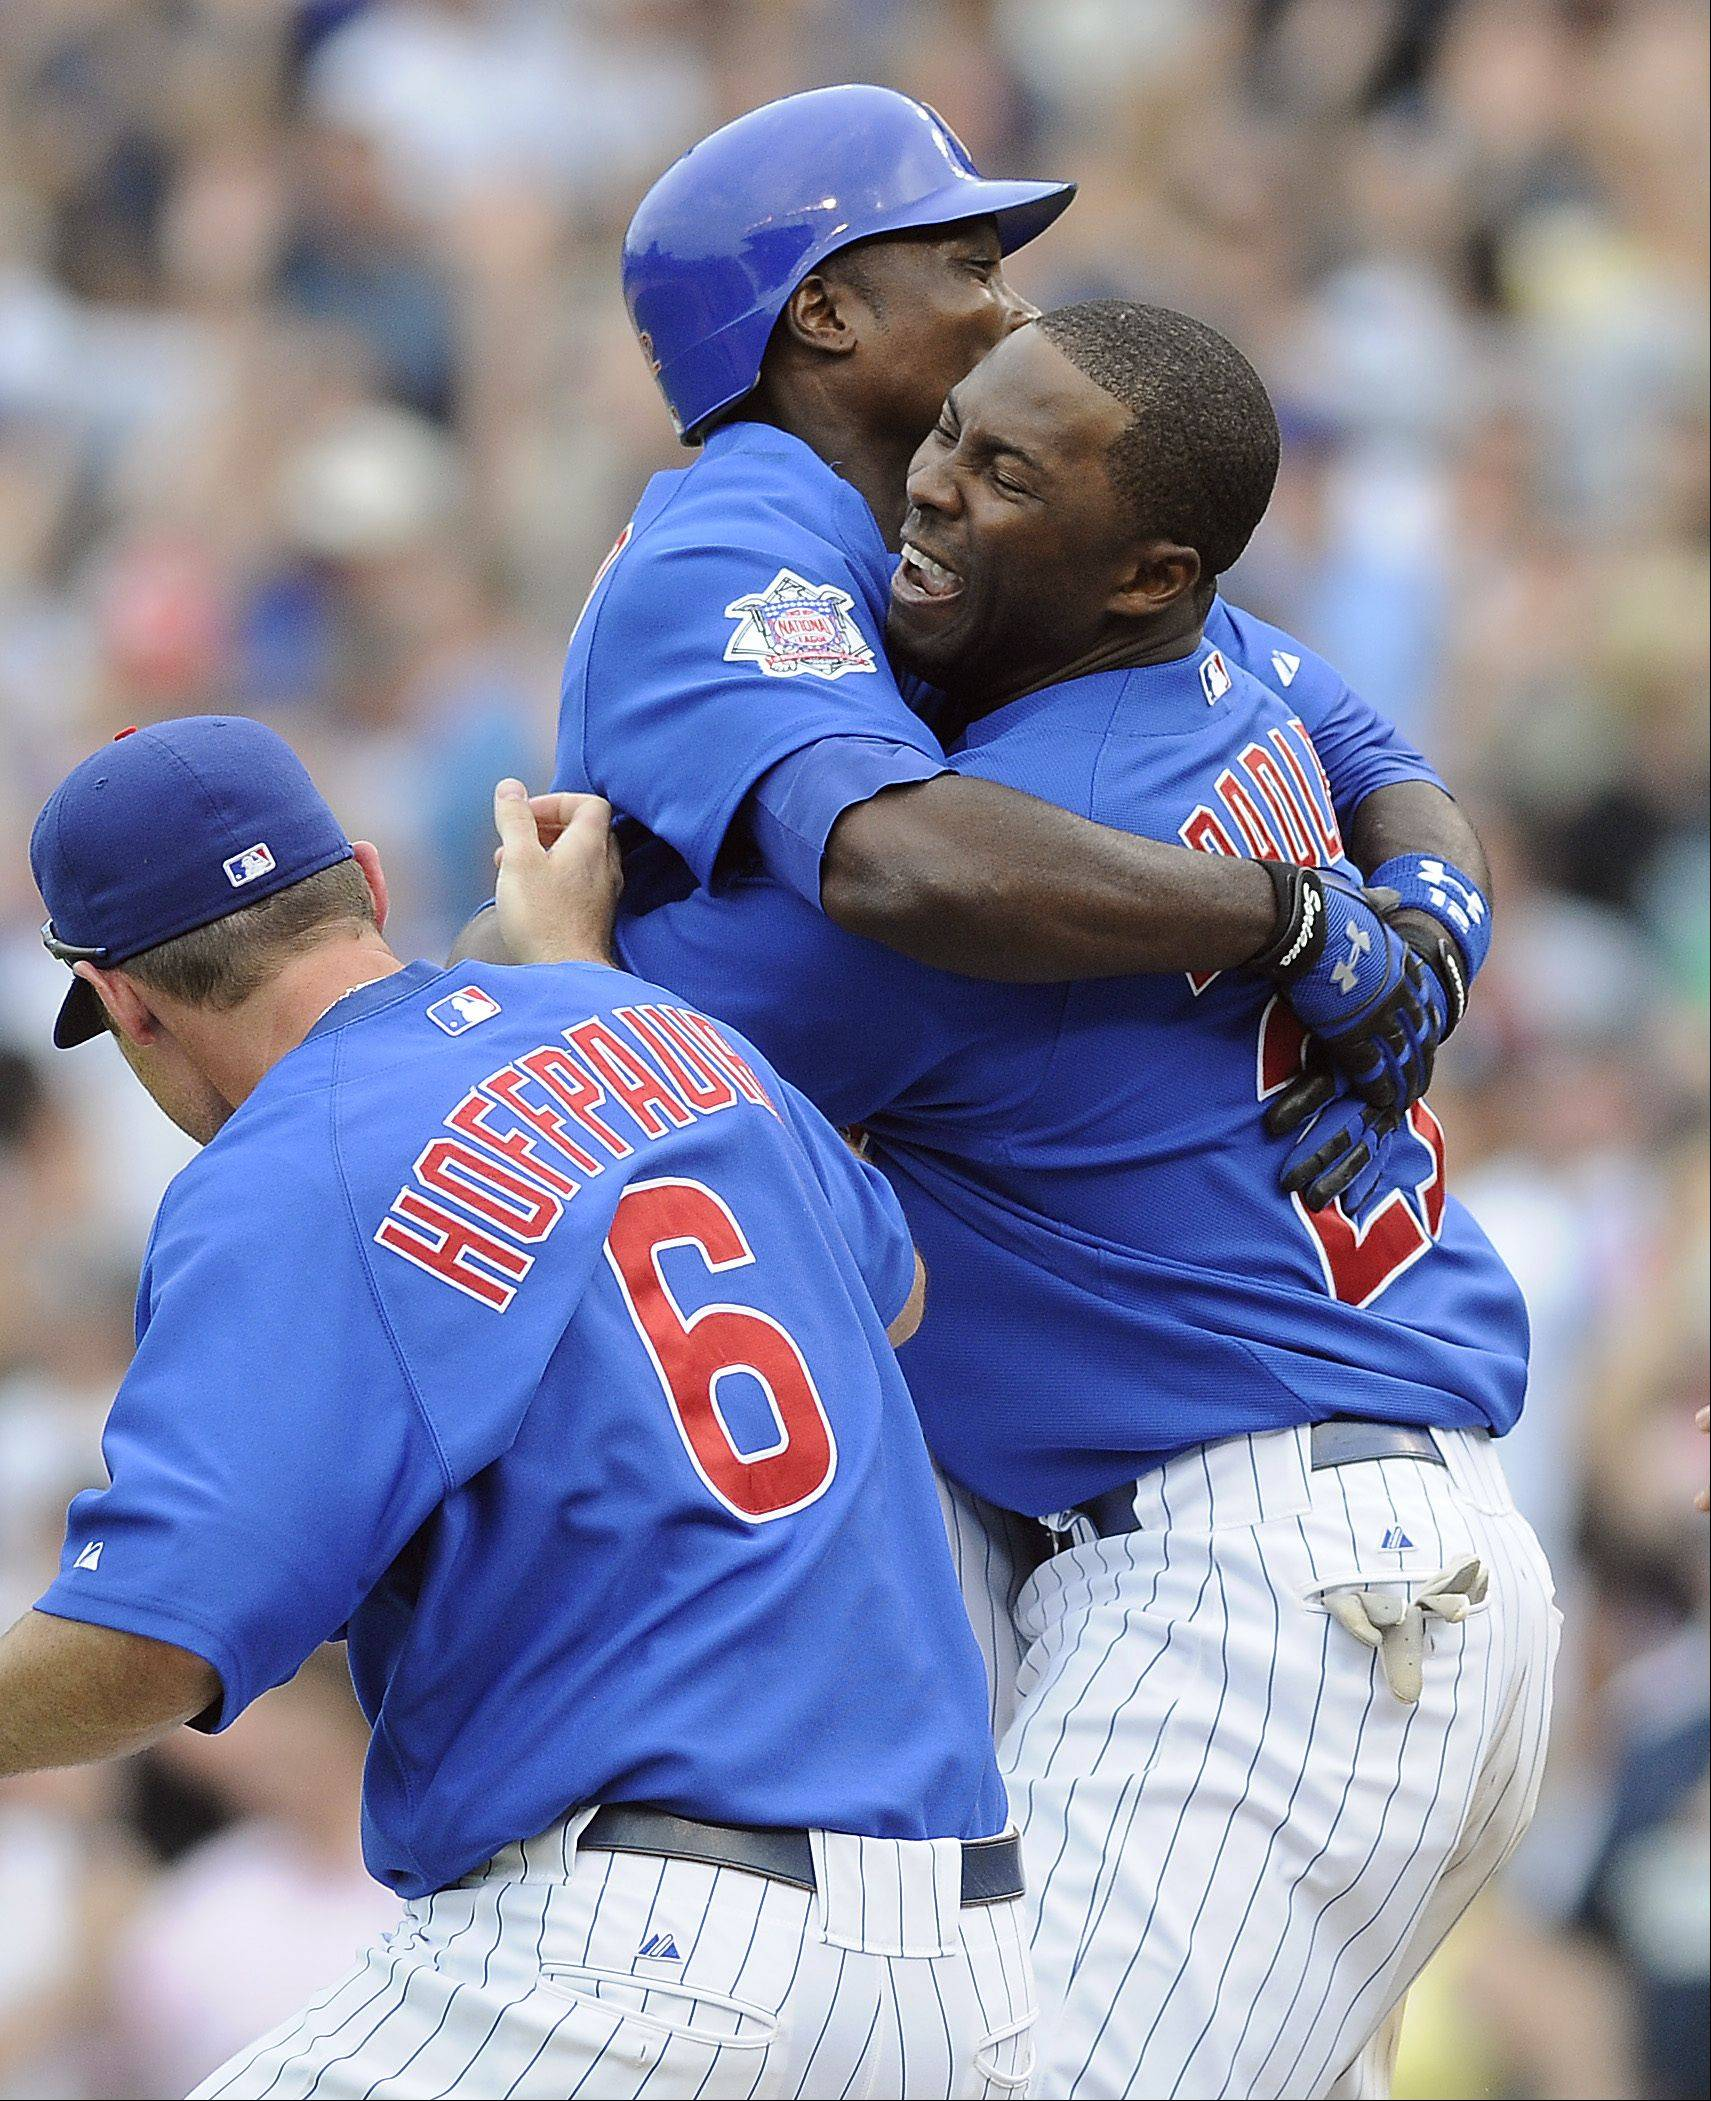 Chicago Cubs' Alfonso Soriano gets a hug from Milton Bradley, right, after Soriano's game-winning hit during the ninth inning of an interleague baseball game against the Chicago White Sox on Thursday, June 18, 2009, at Wrigley Field in Chicago. The Cubs won 6-5. At left is Micah Hoffpauir.